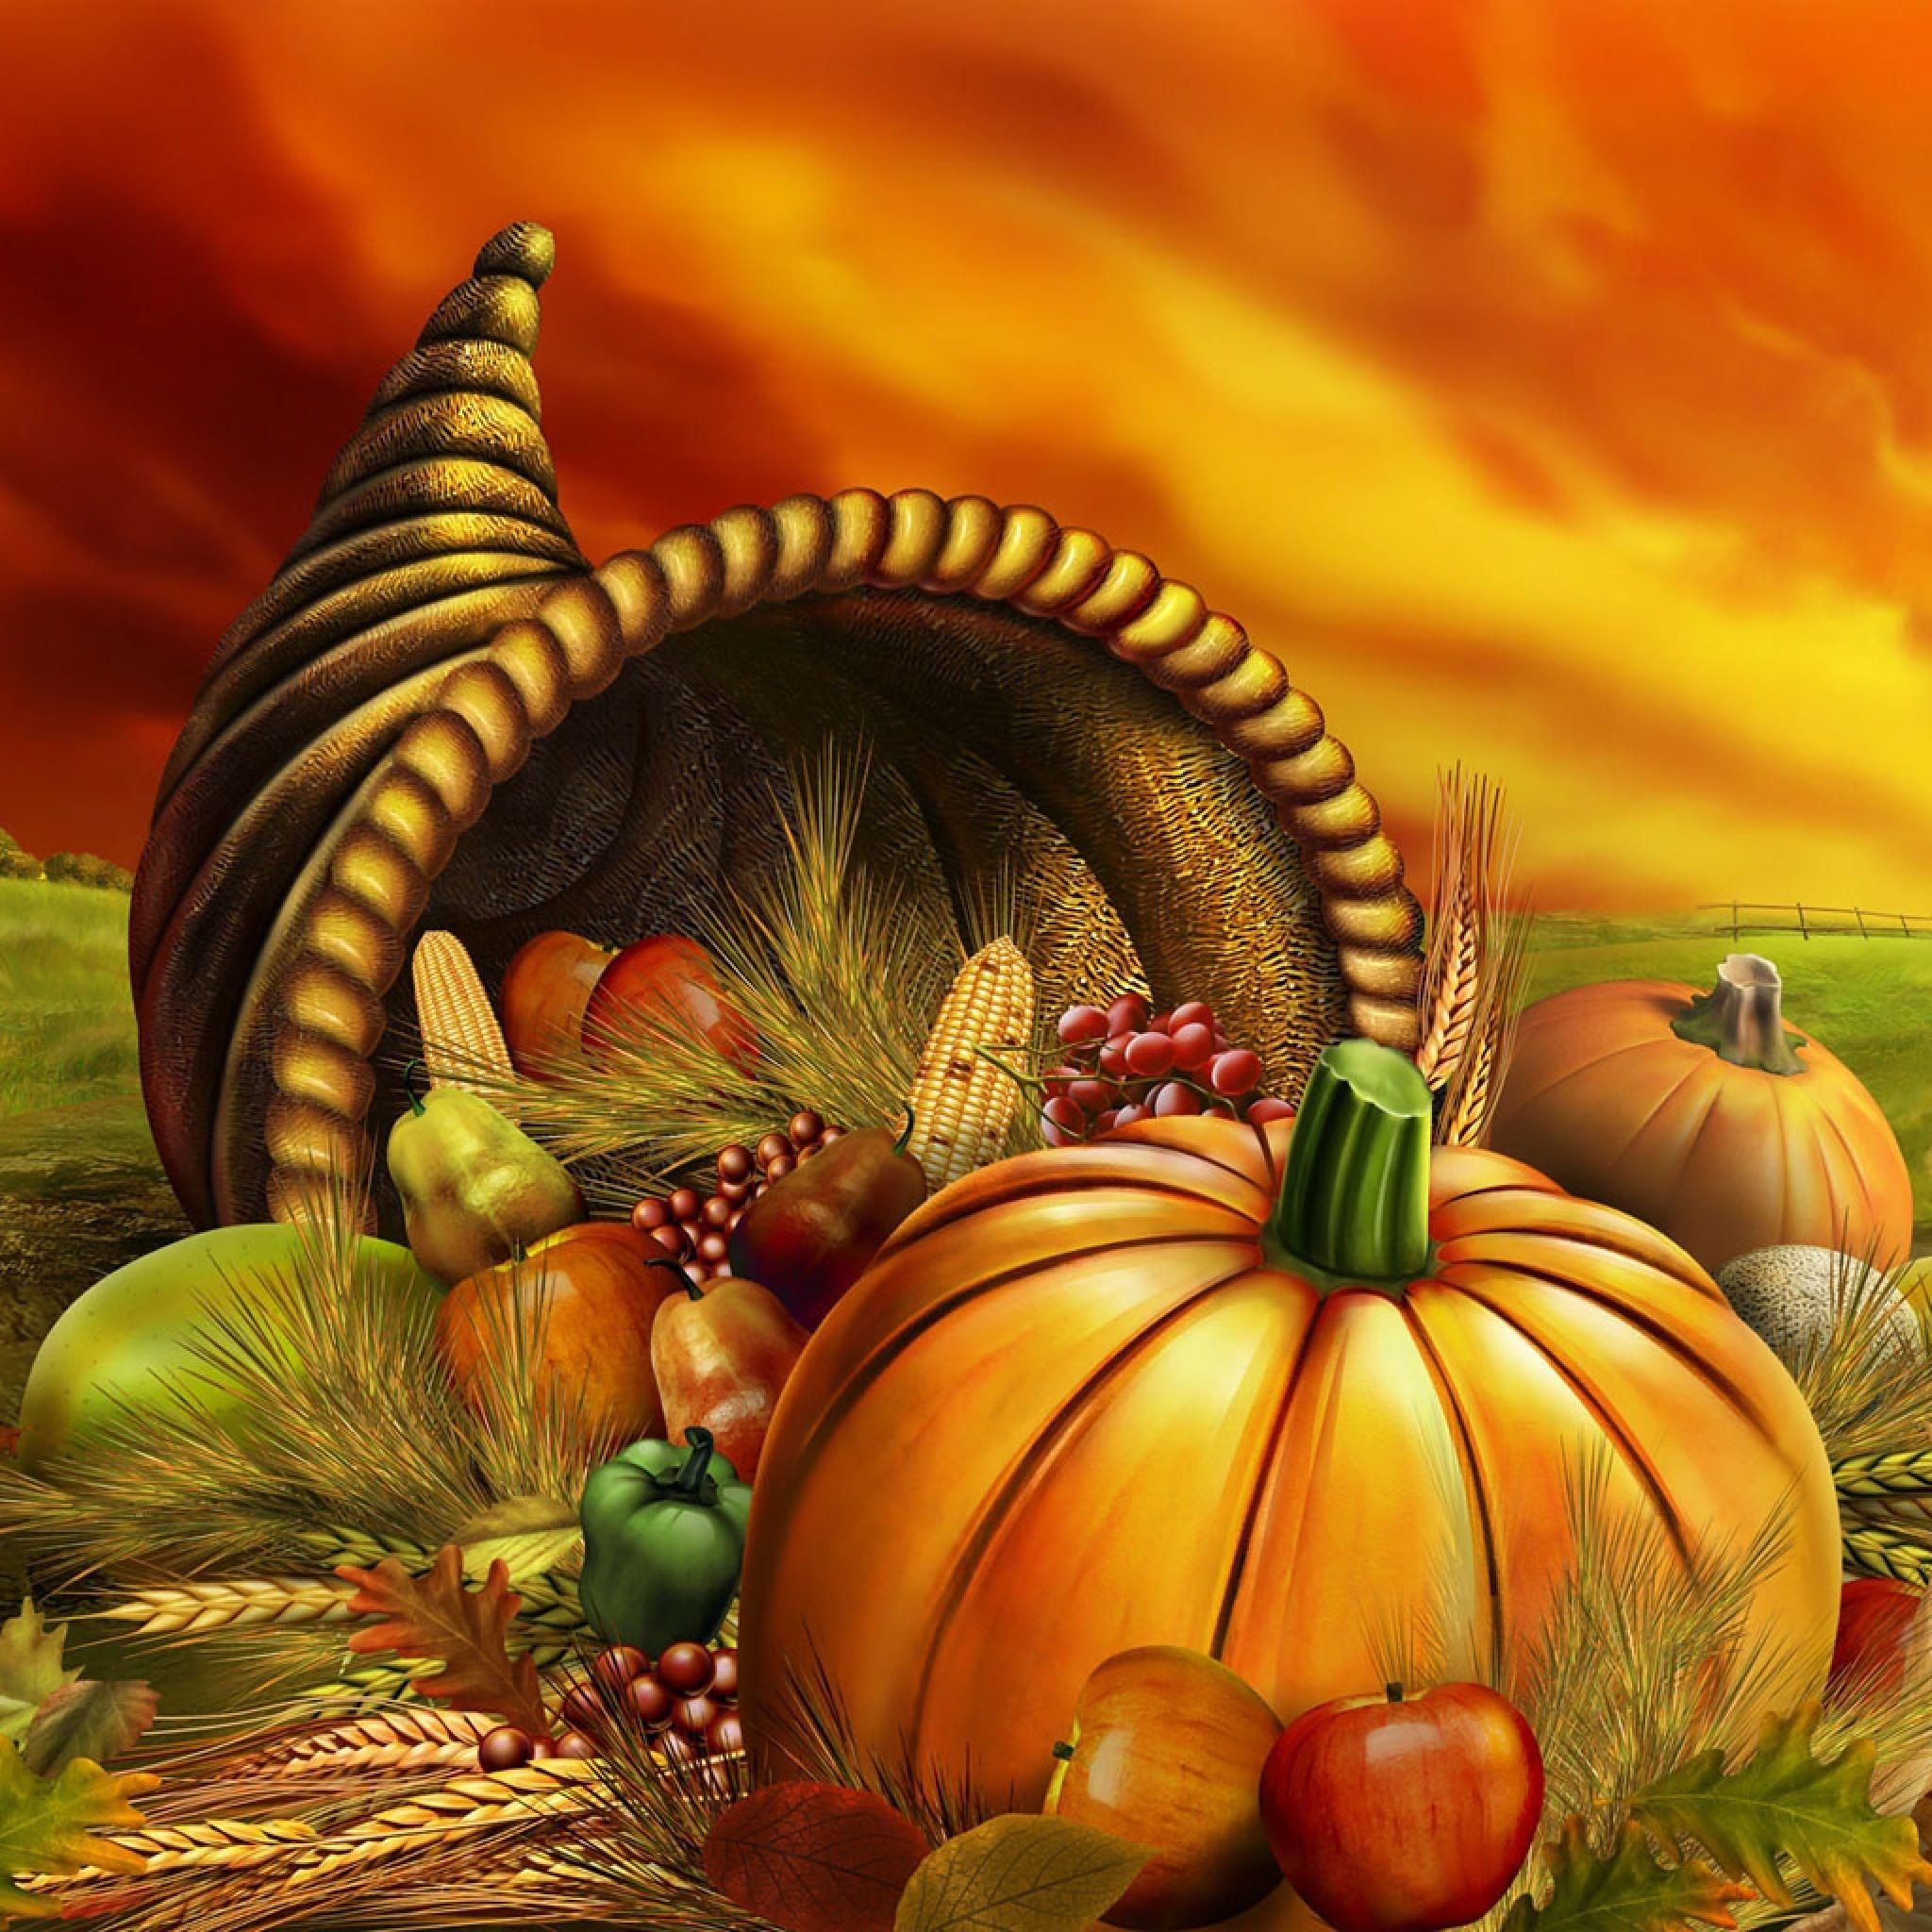 Res: 2048x2048, thanksgiving wallpaper for ipad 2